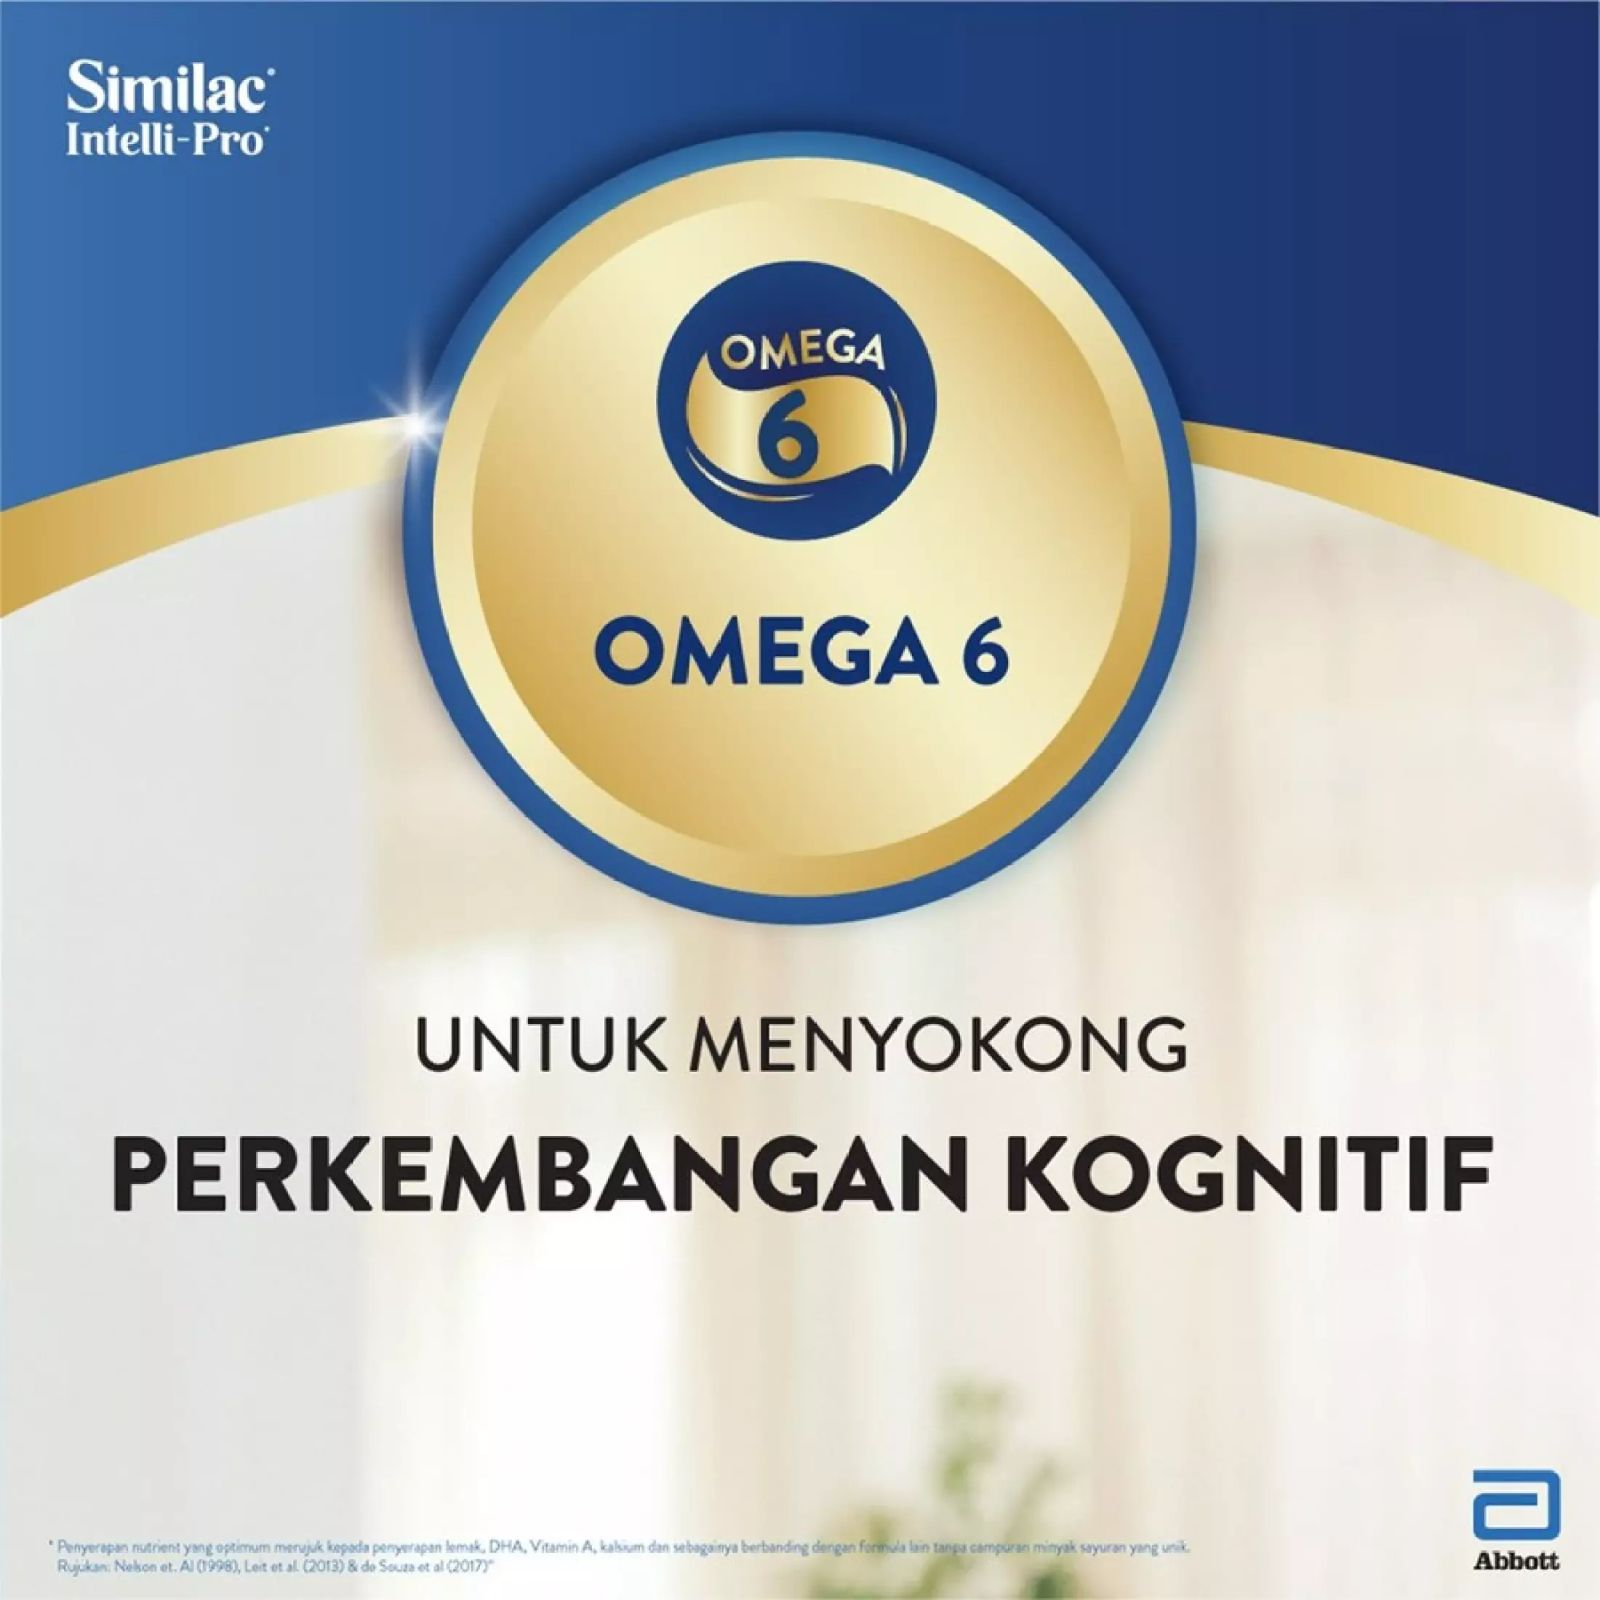 Similac Intelli-Pro Step 3 (1.2Kg) FOC 1 Pack 150g [While Stock Last]